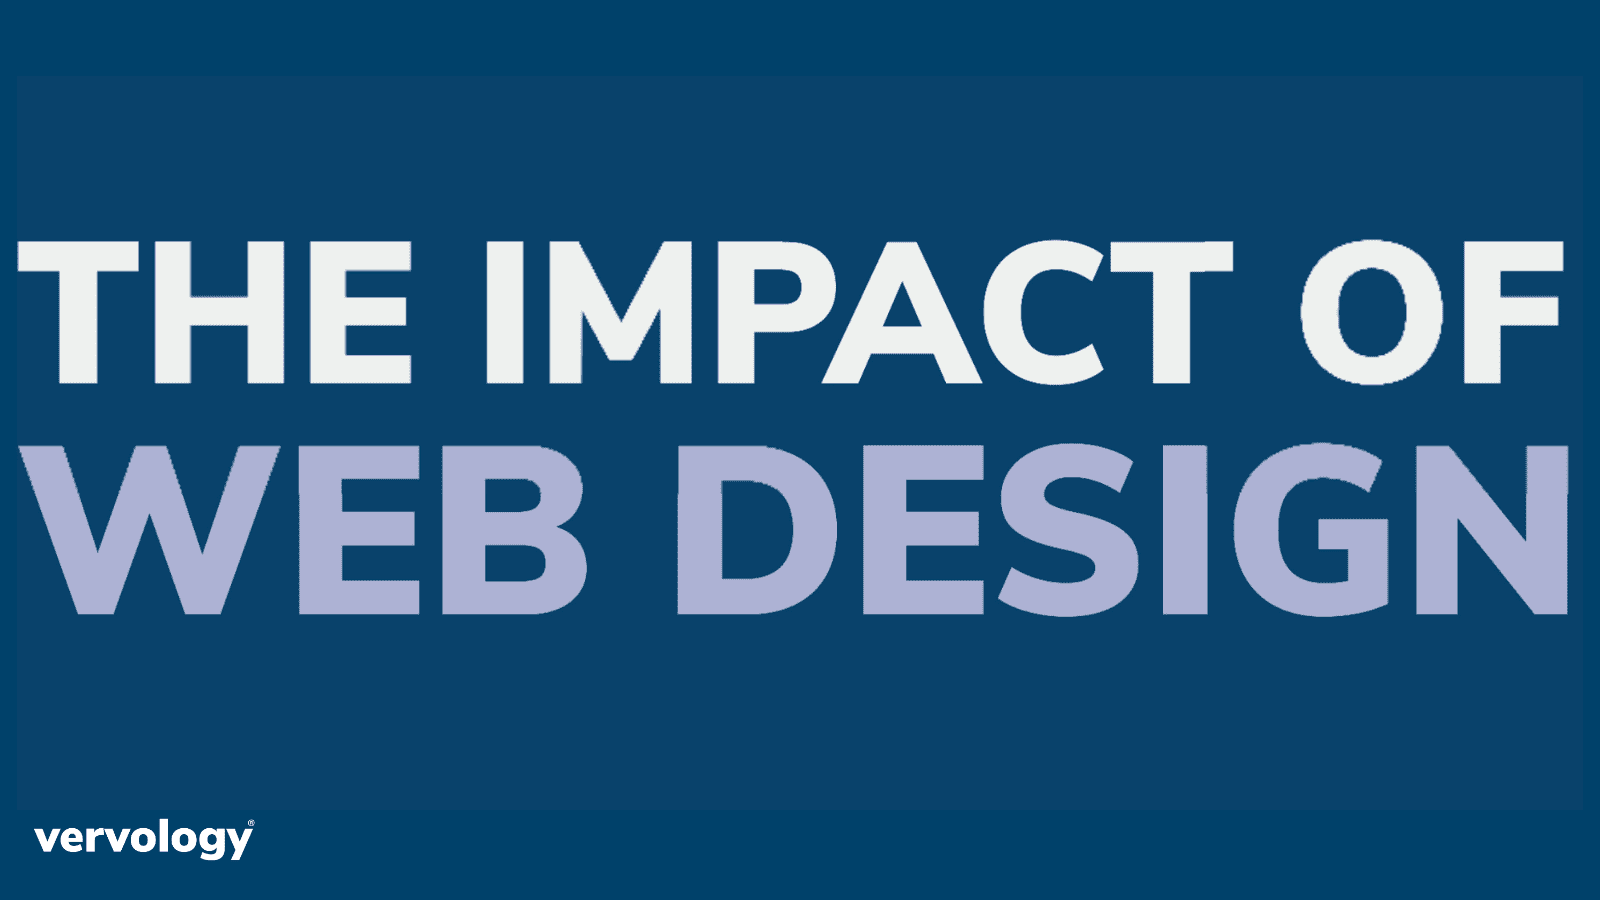 The Impact of Web Design